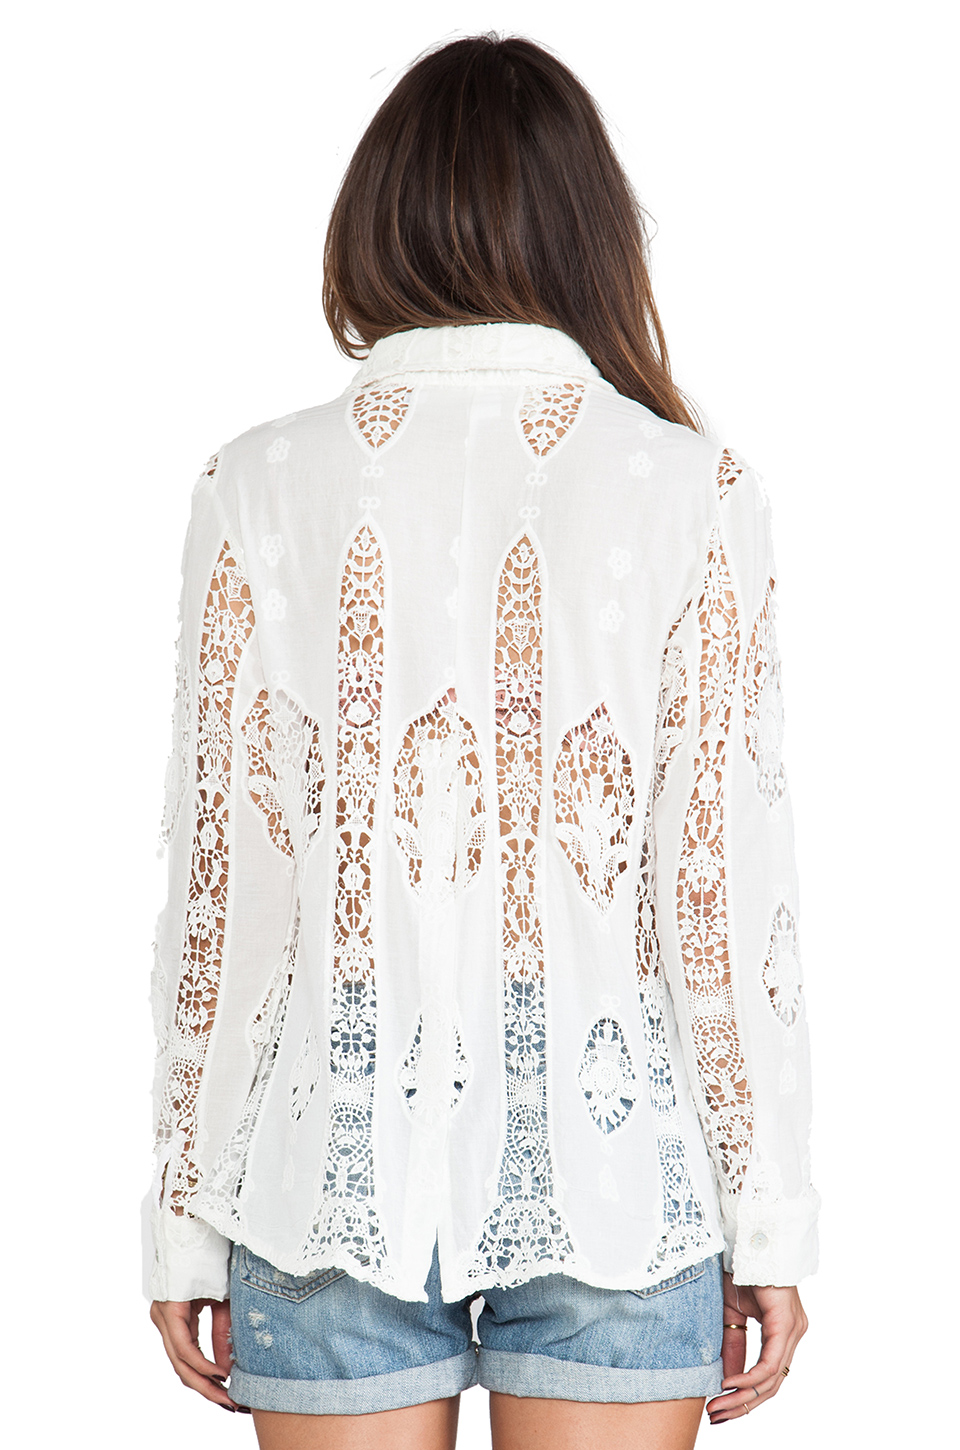 Jen's Pirate Booty Patience Button Up in Stained Glass